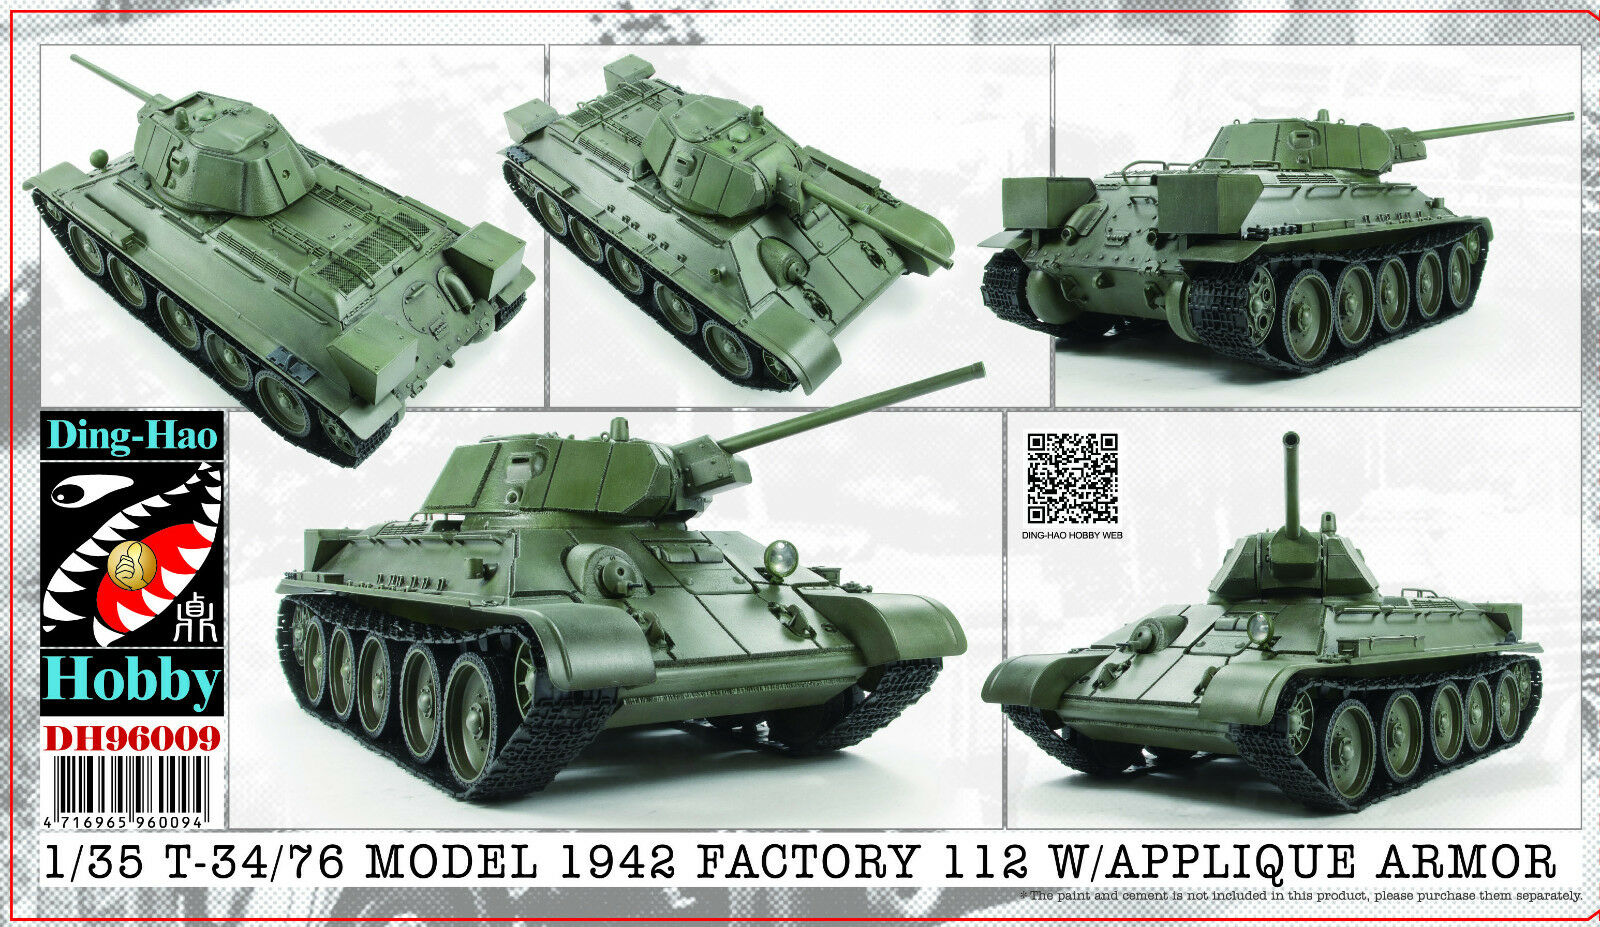 Ding-Hao 1 35 DH-96009 WWII Soviet T-34 76 Mod1942 Factory 112 w APPLIQUW ARMOR